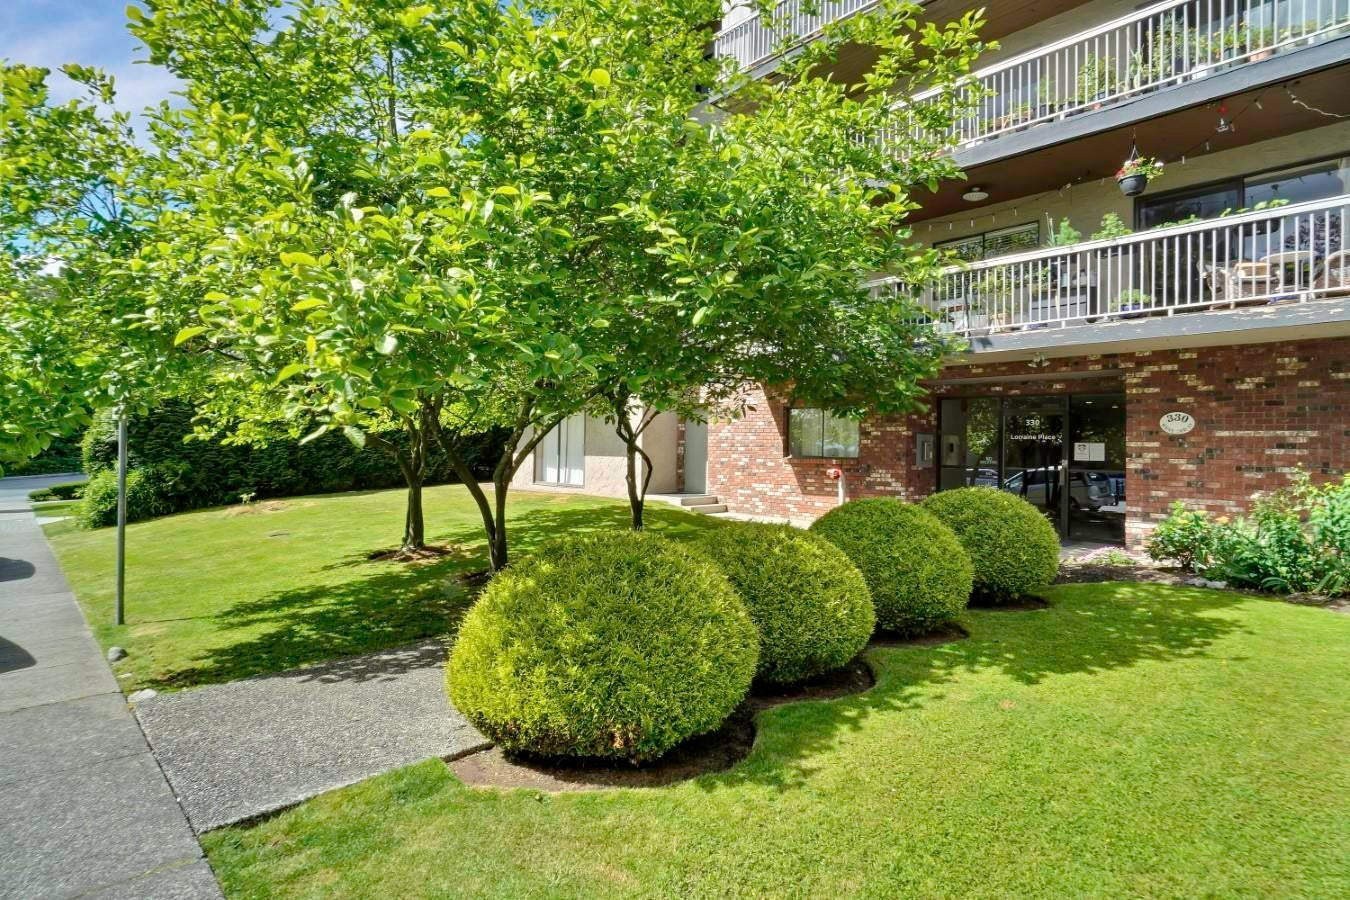 206 330 W 2ND STREET - Lower Lonsdale Apartment/Condo for sale, 2 Bedrooms (R2604160) - #30